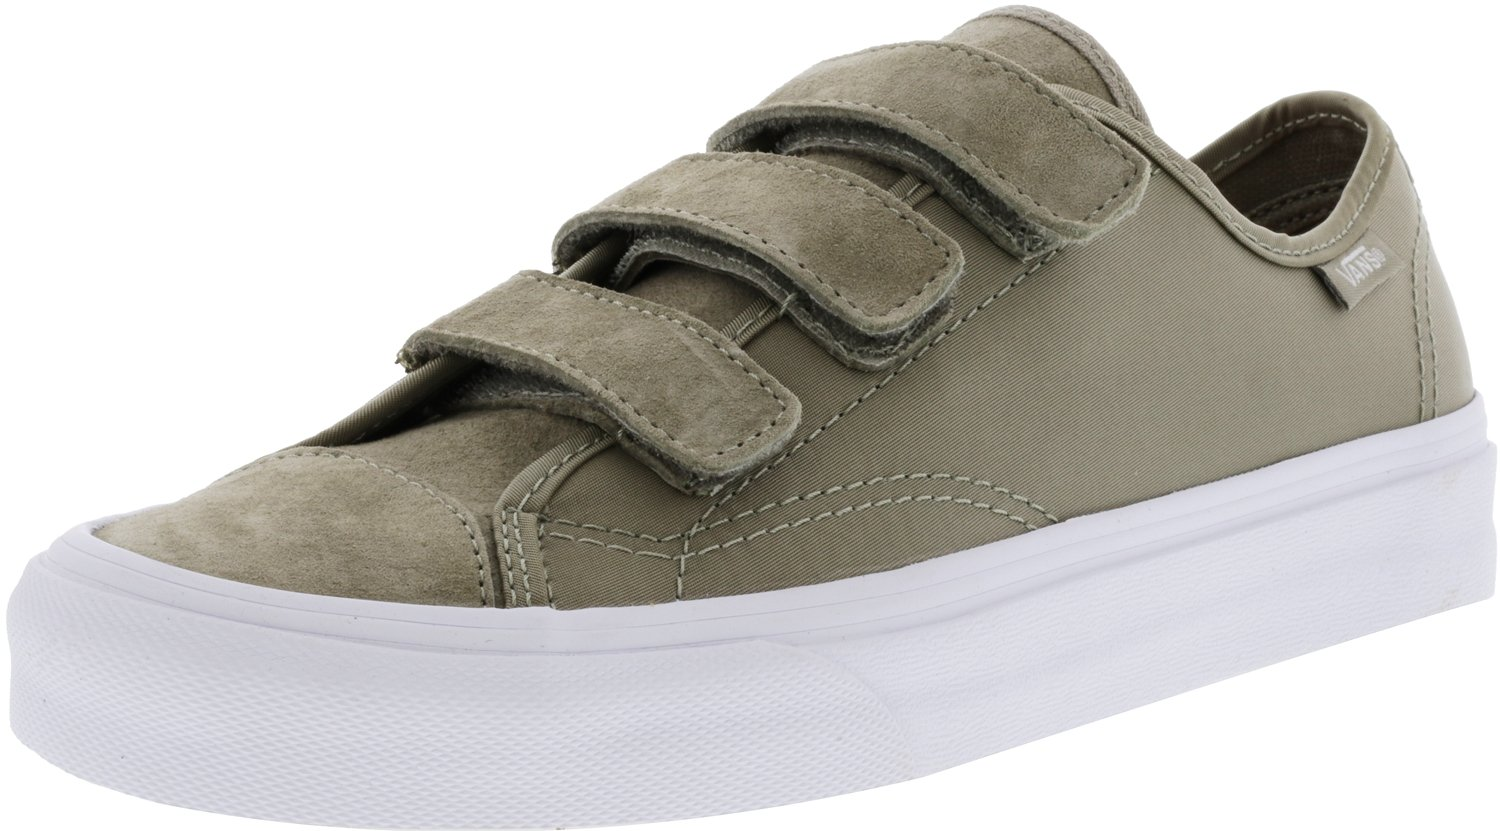 Vans Style 23 V Boom Silver Sage/True White Ankle-High Fabric Skateboarding Shoe - 9.5M 8M